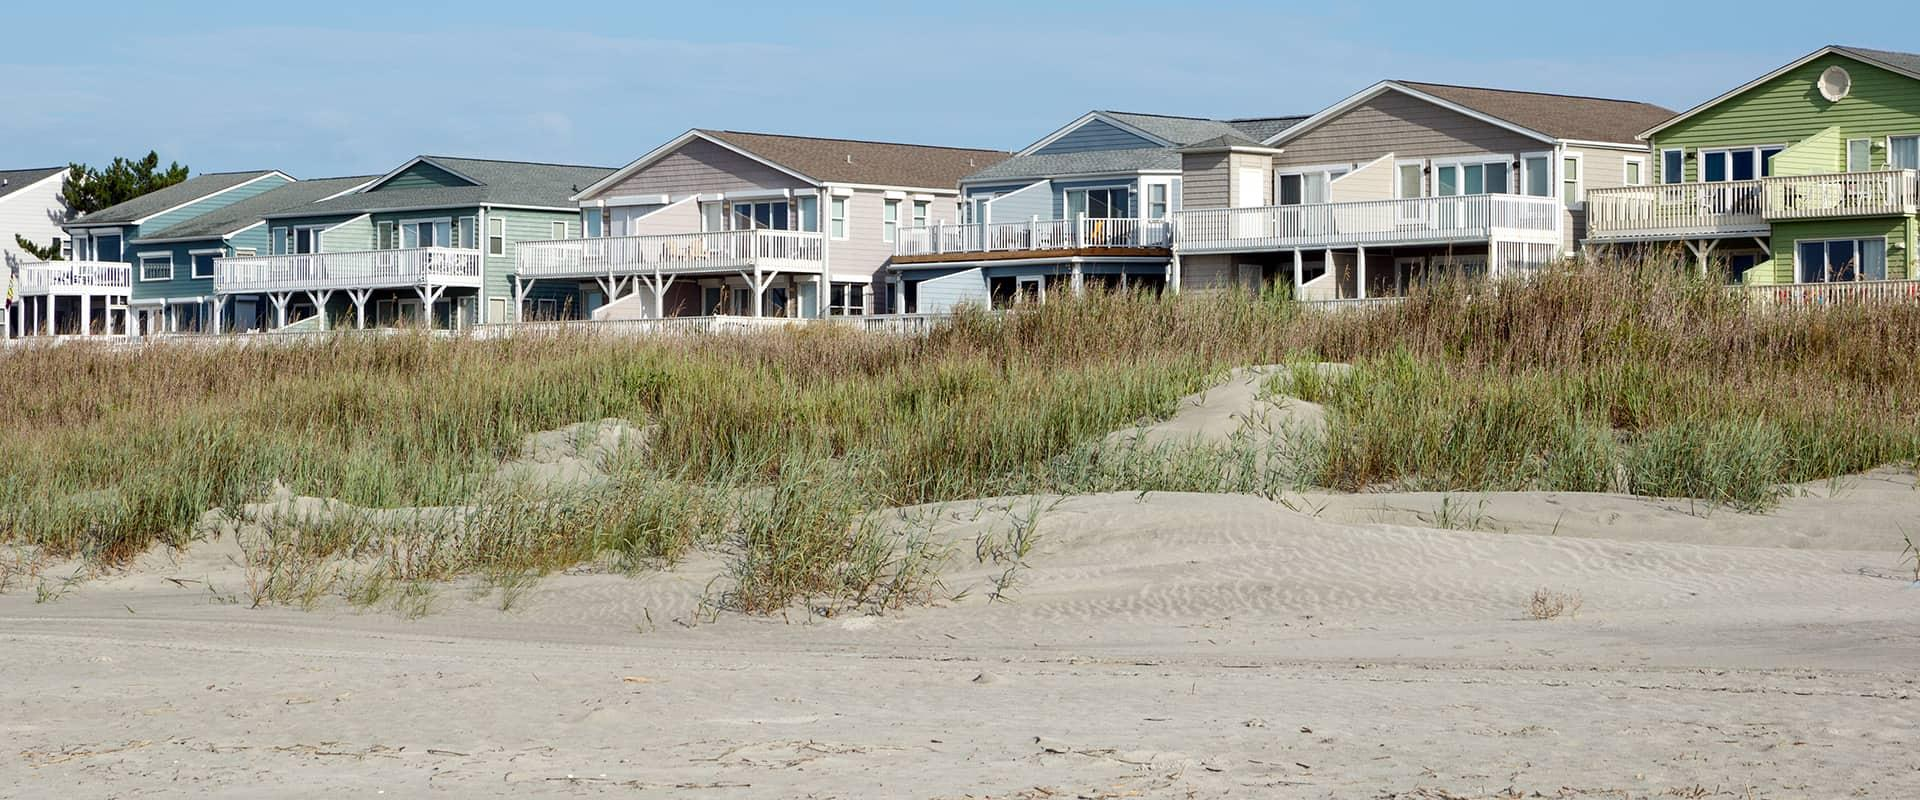 beach view of a row of homes